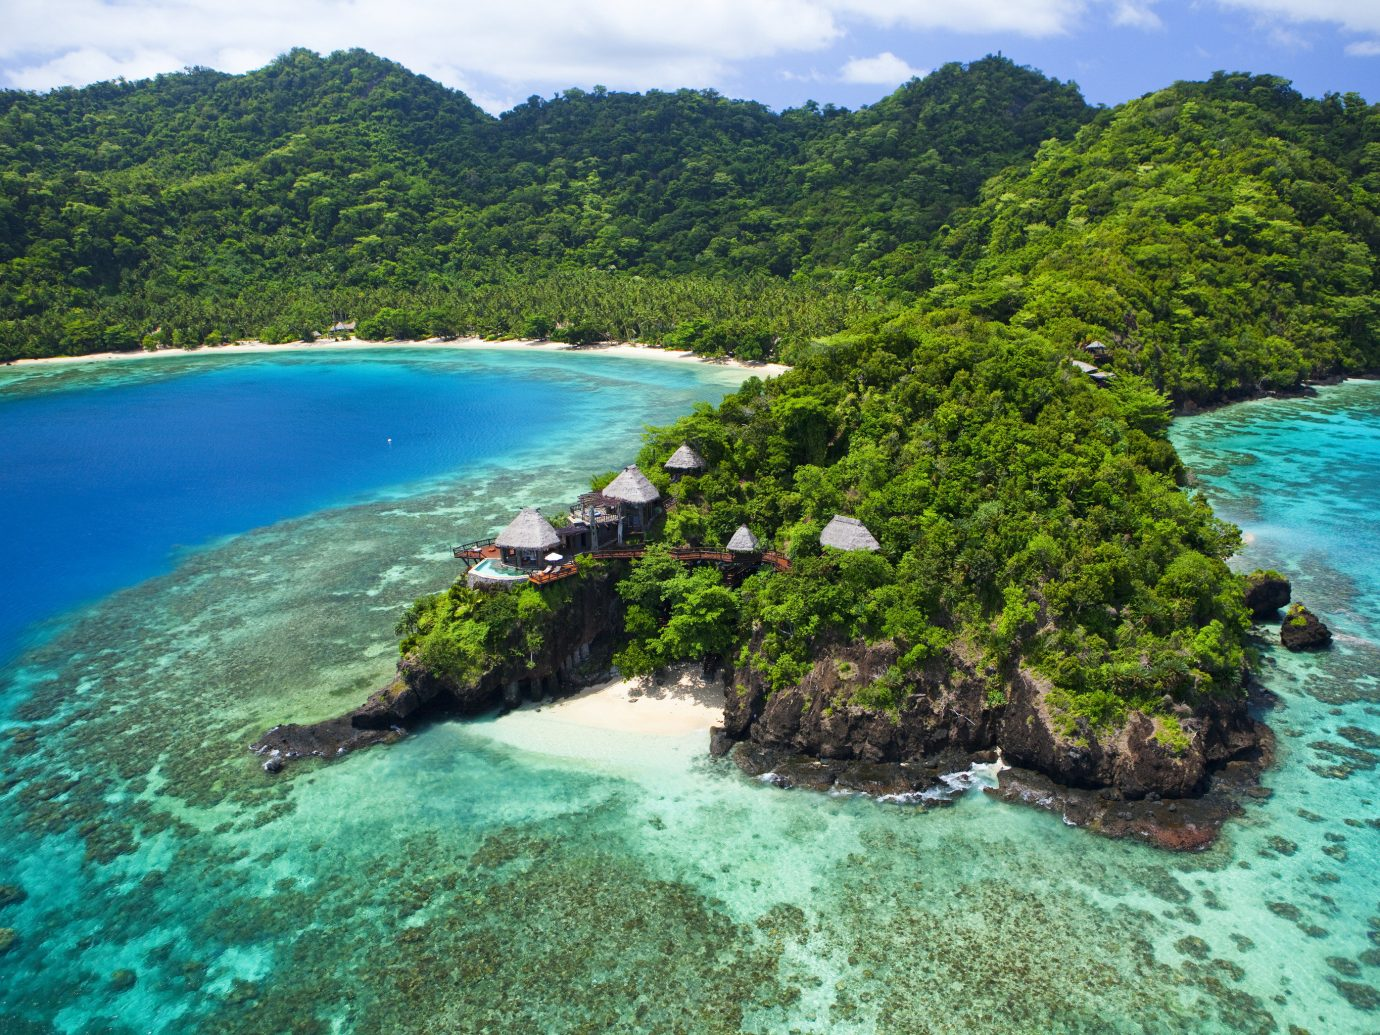 Islands Trip Ideas water outdoor tree sky Nature reef coastal and oceanic landforms vegetation nature reserve River promontory Island tropics Sea islet archipelago Coast bay Lagoon caribbean water resources Ocean inlet tourism mount scenery cape cove Lake computer wallpaper shore surrounded pond swimming